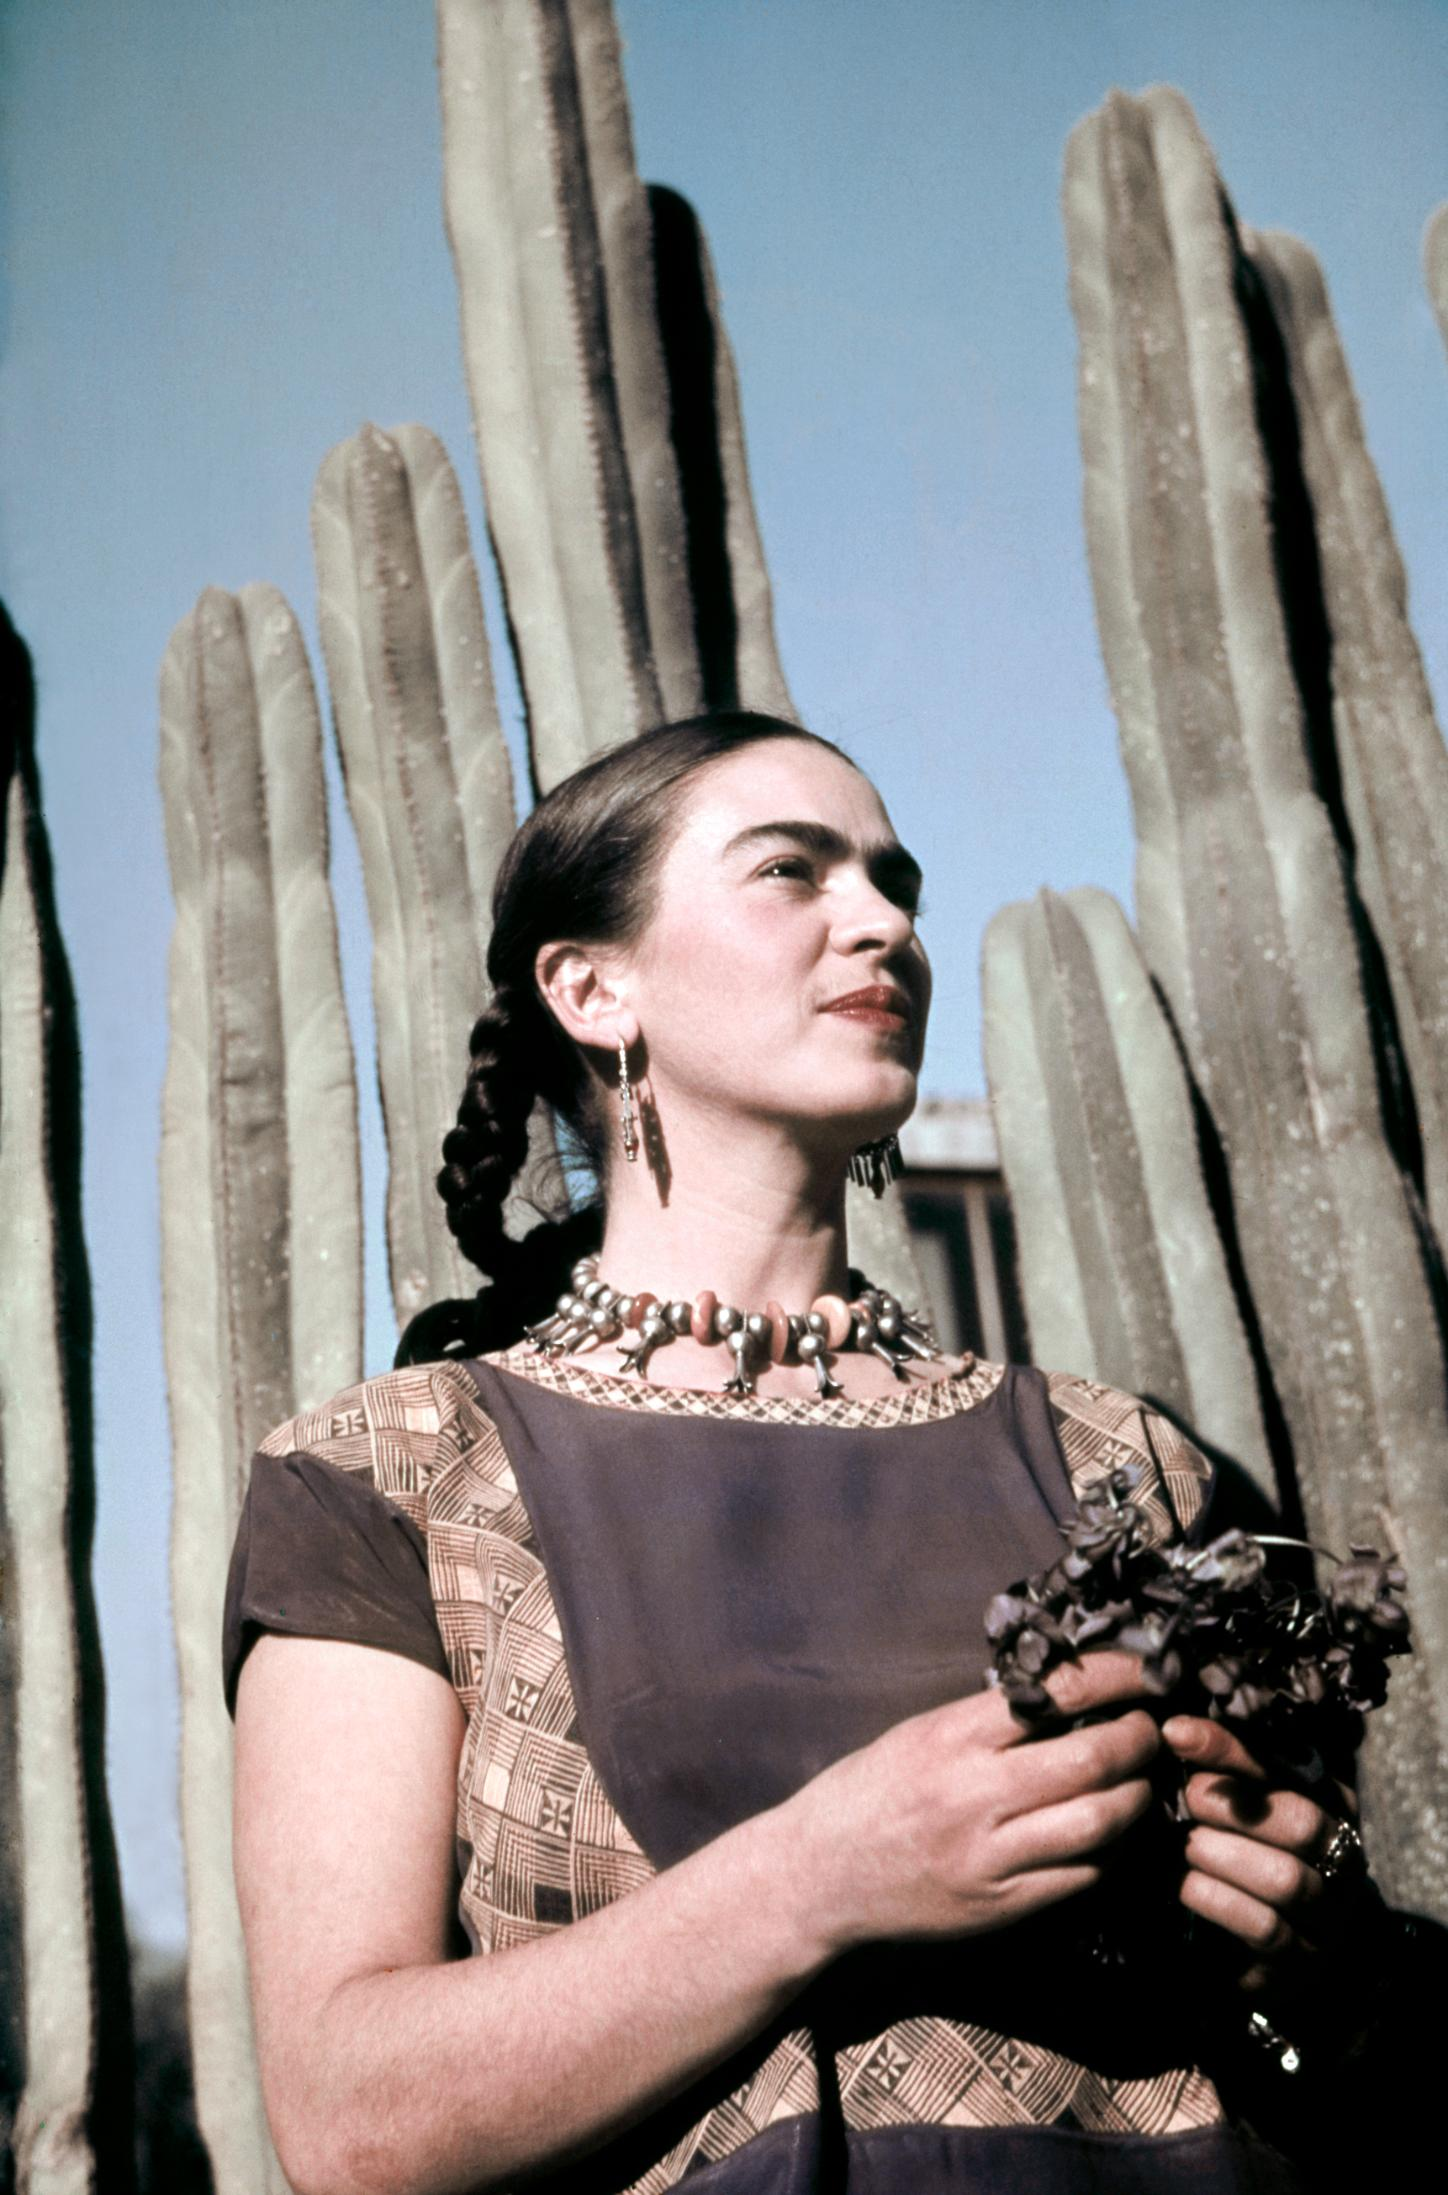 Frida Kahlo The Mexican Artist Who Used Fashion To Make A Powerful Political Statement Cnn Style